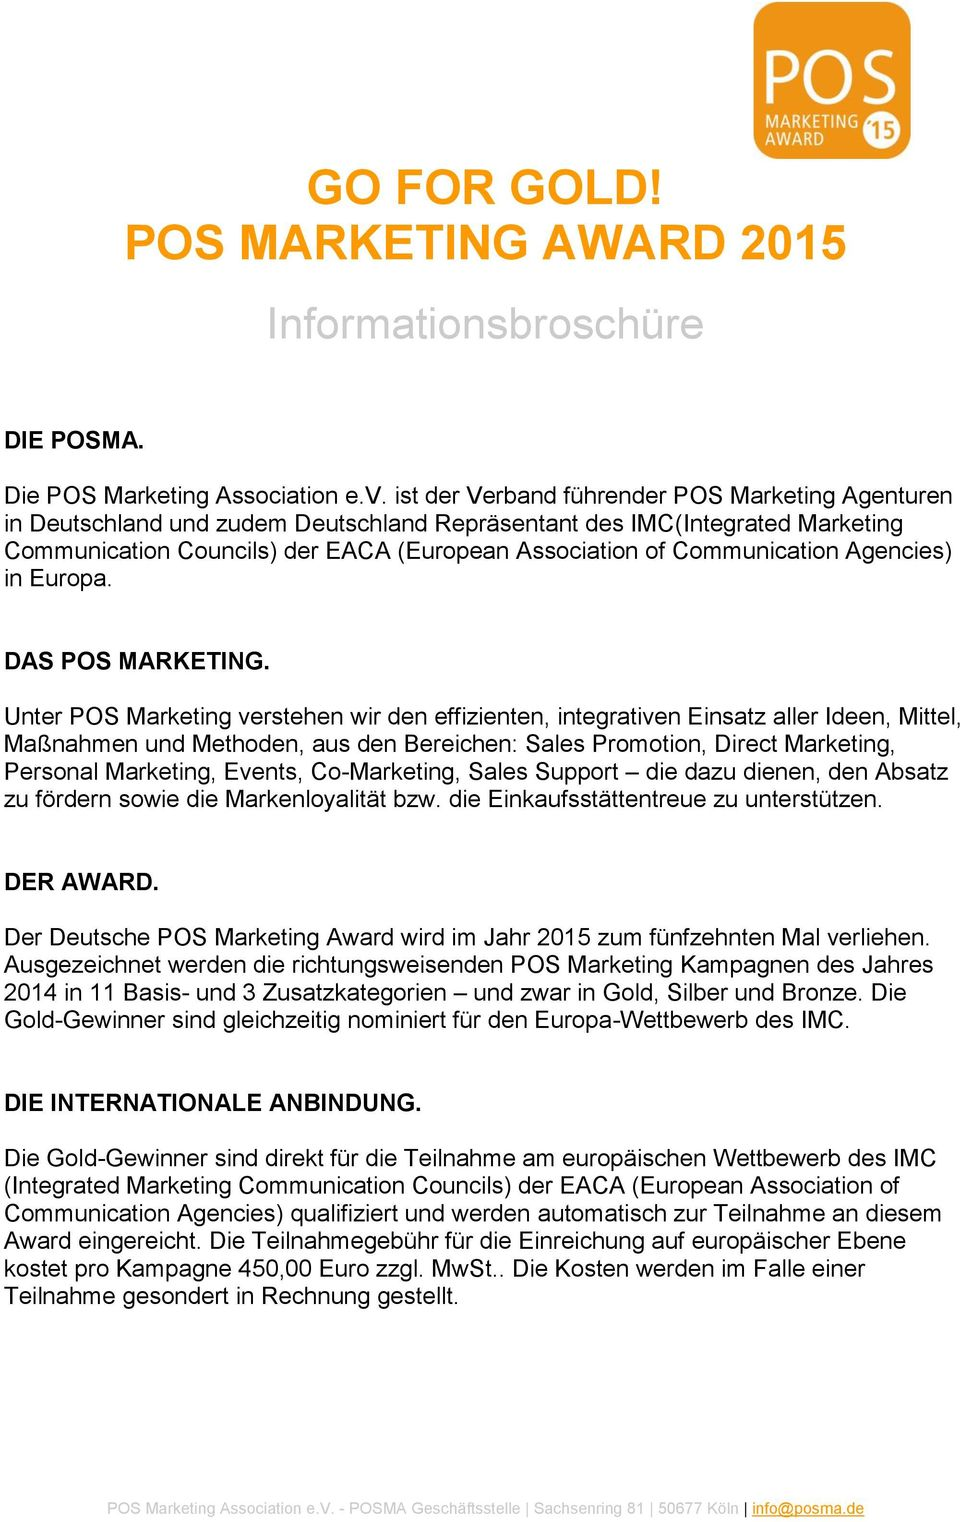 Communication Agencies) in Europa. DAS POS MARKETING.